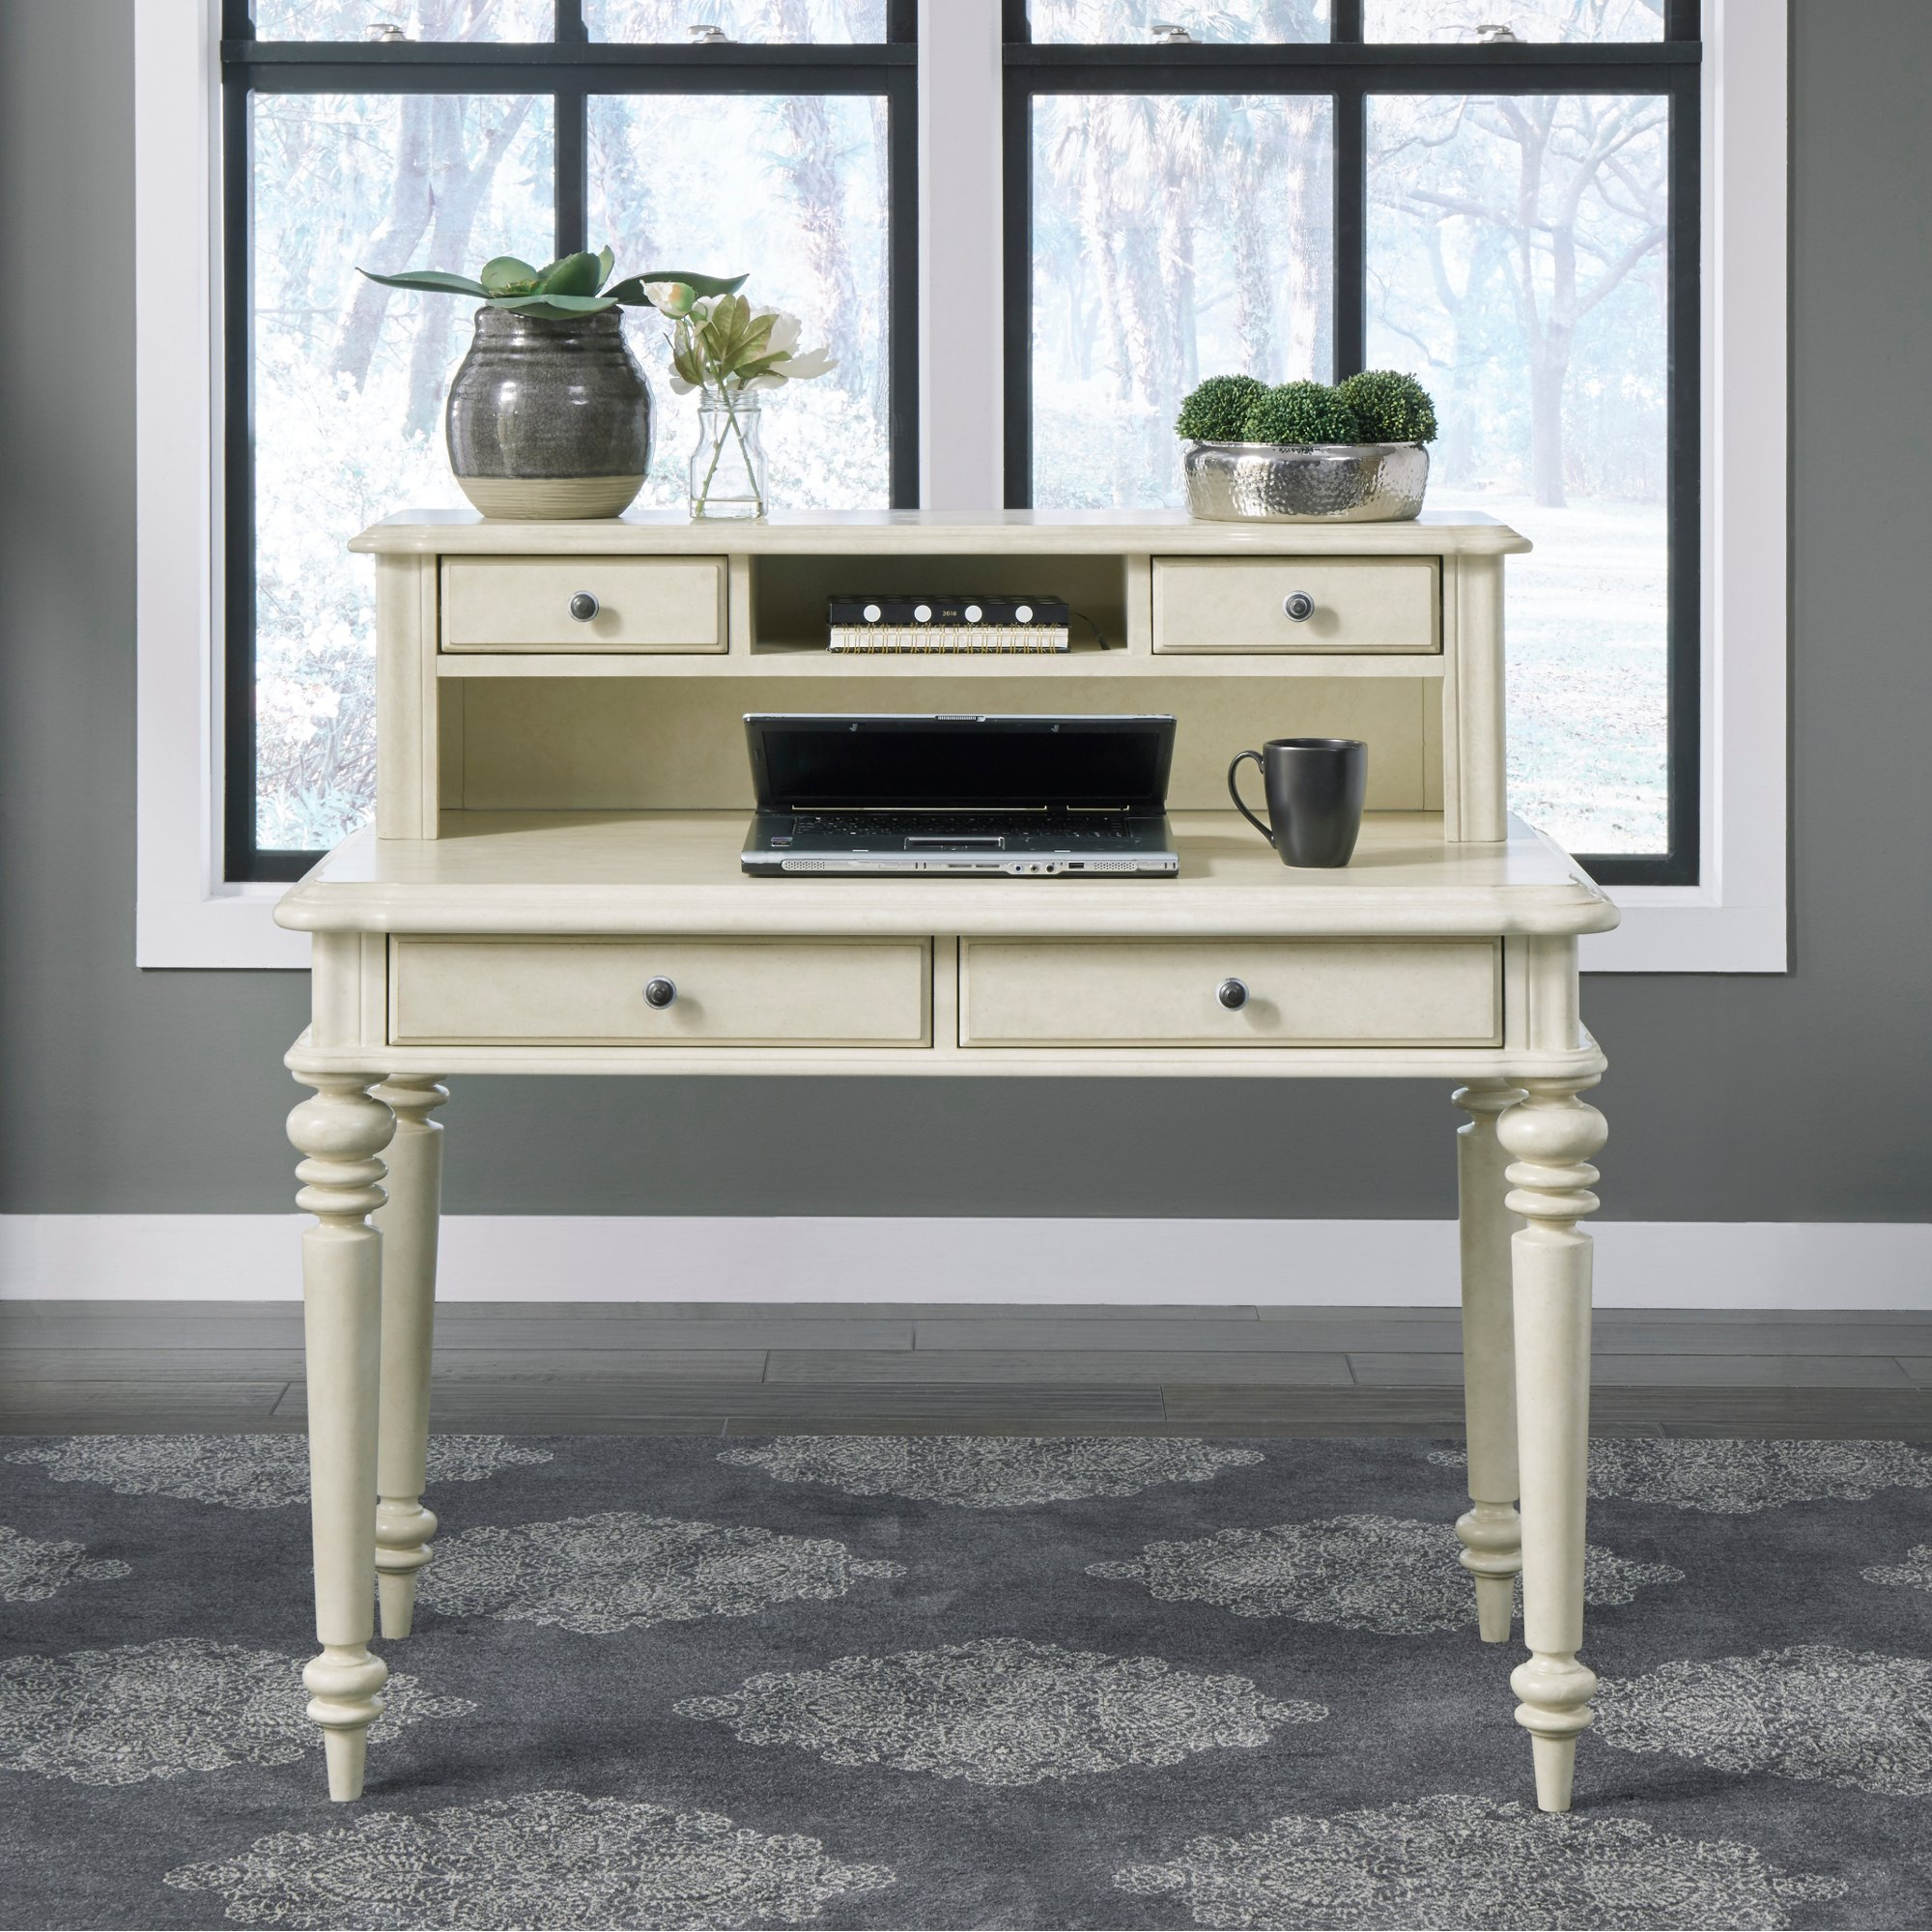 Home Styles Antique White Student Desk - Provence from R.C. Willey